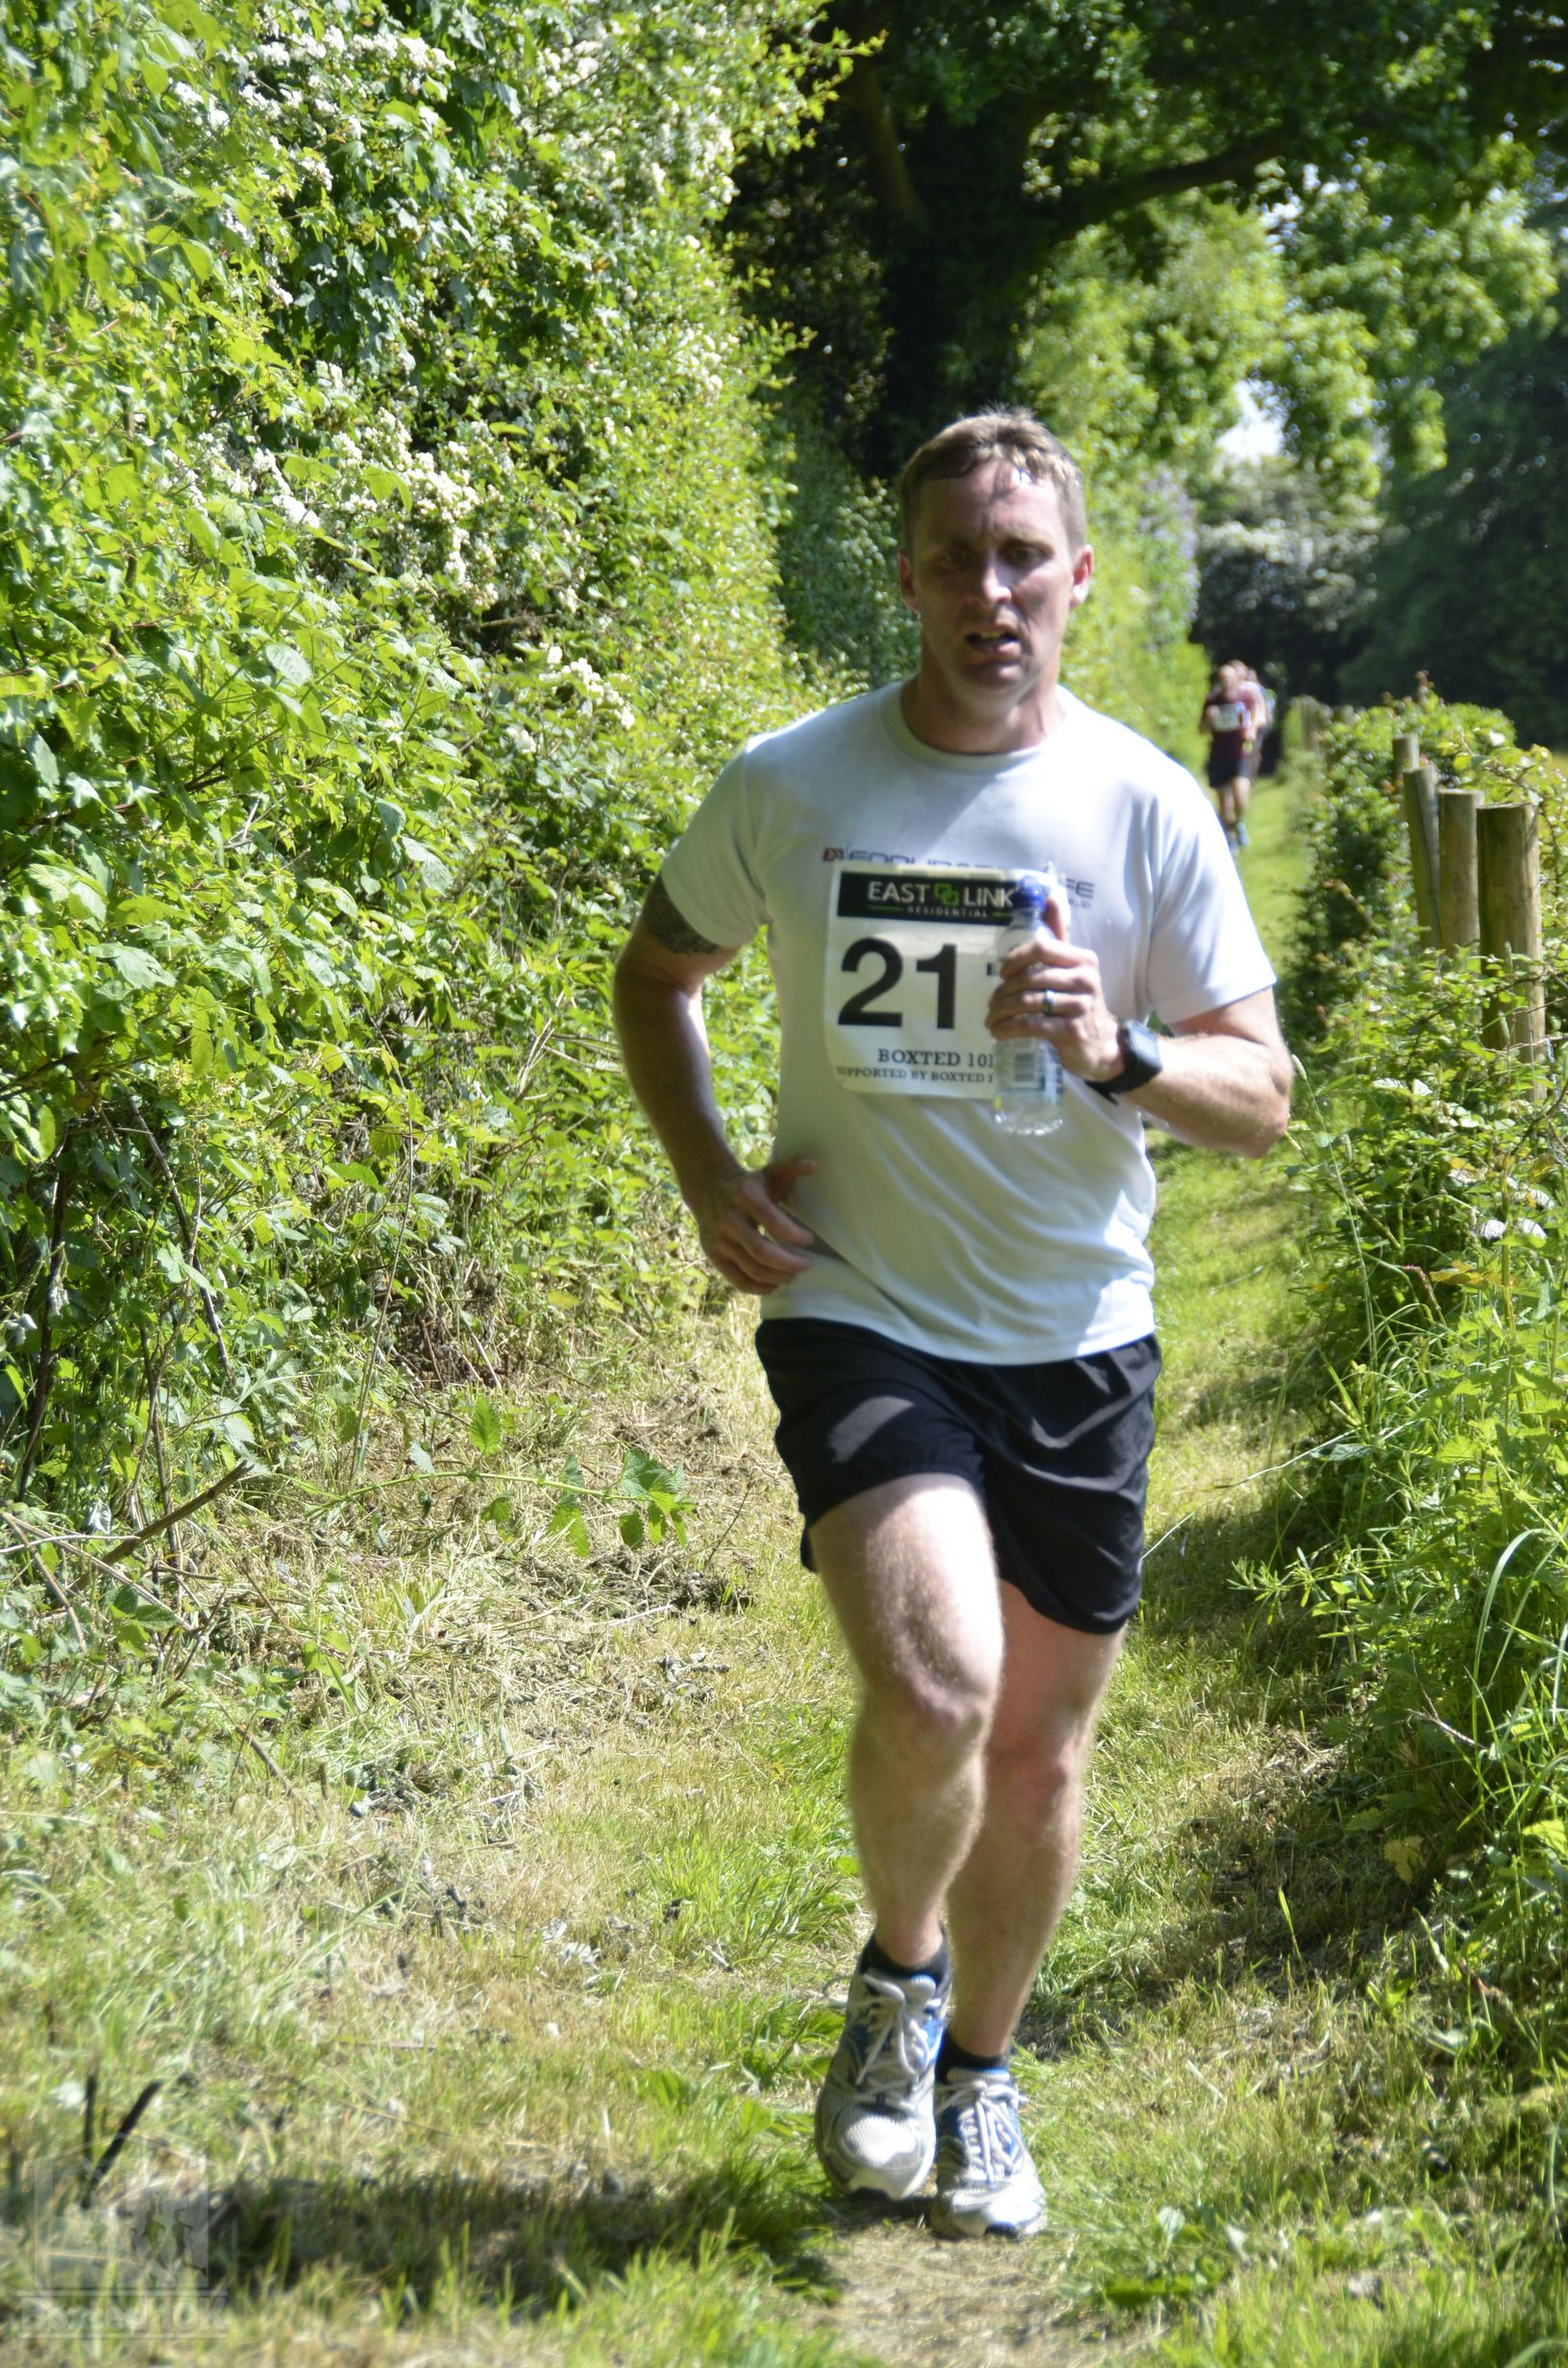 Boxted10k-00116